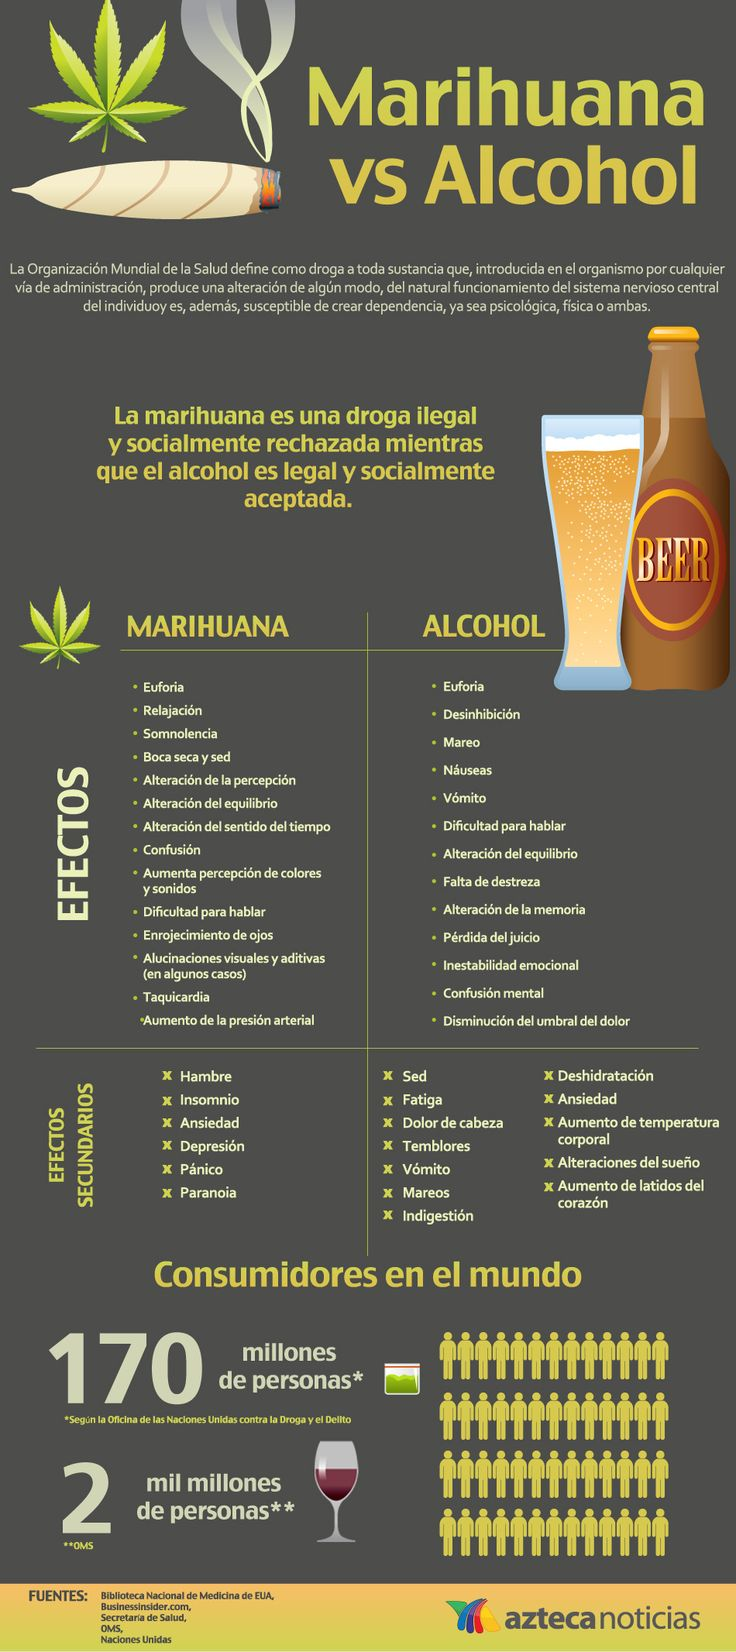 Marihuana vs Alcohol #infografia